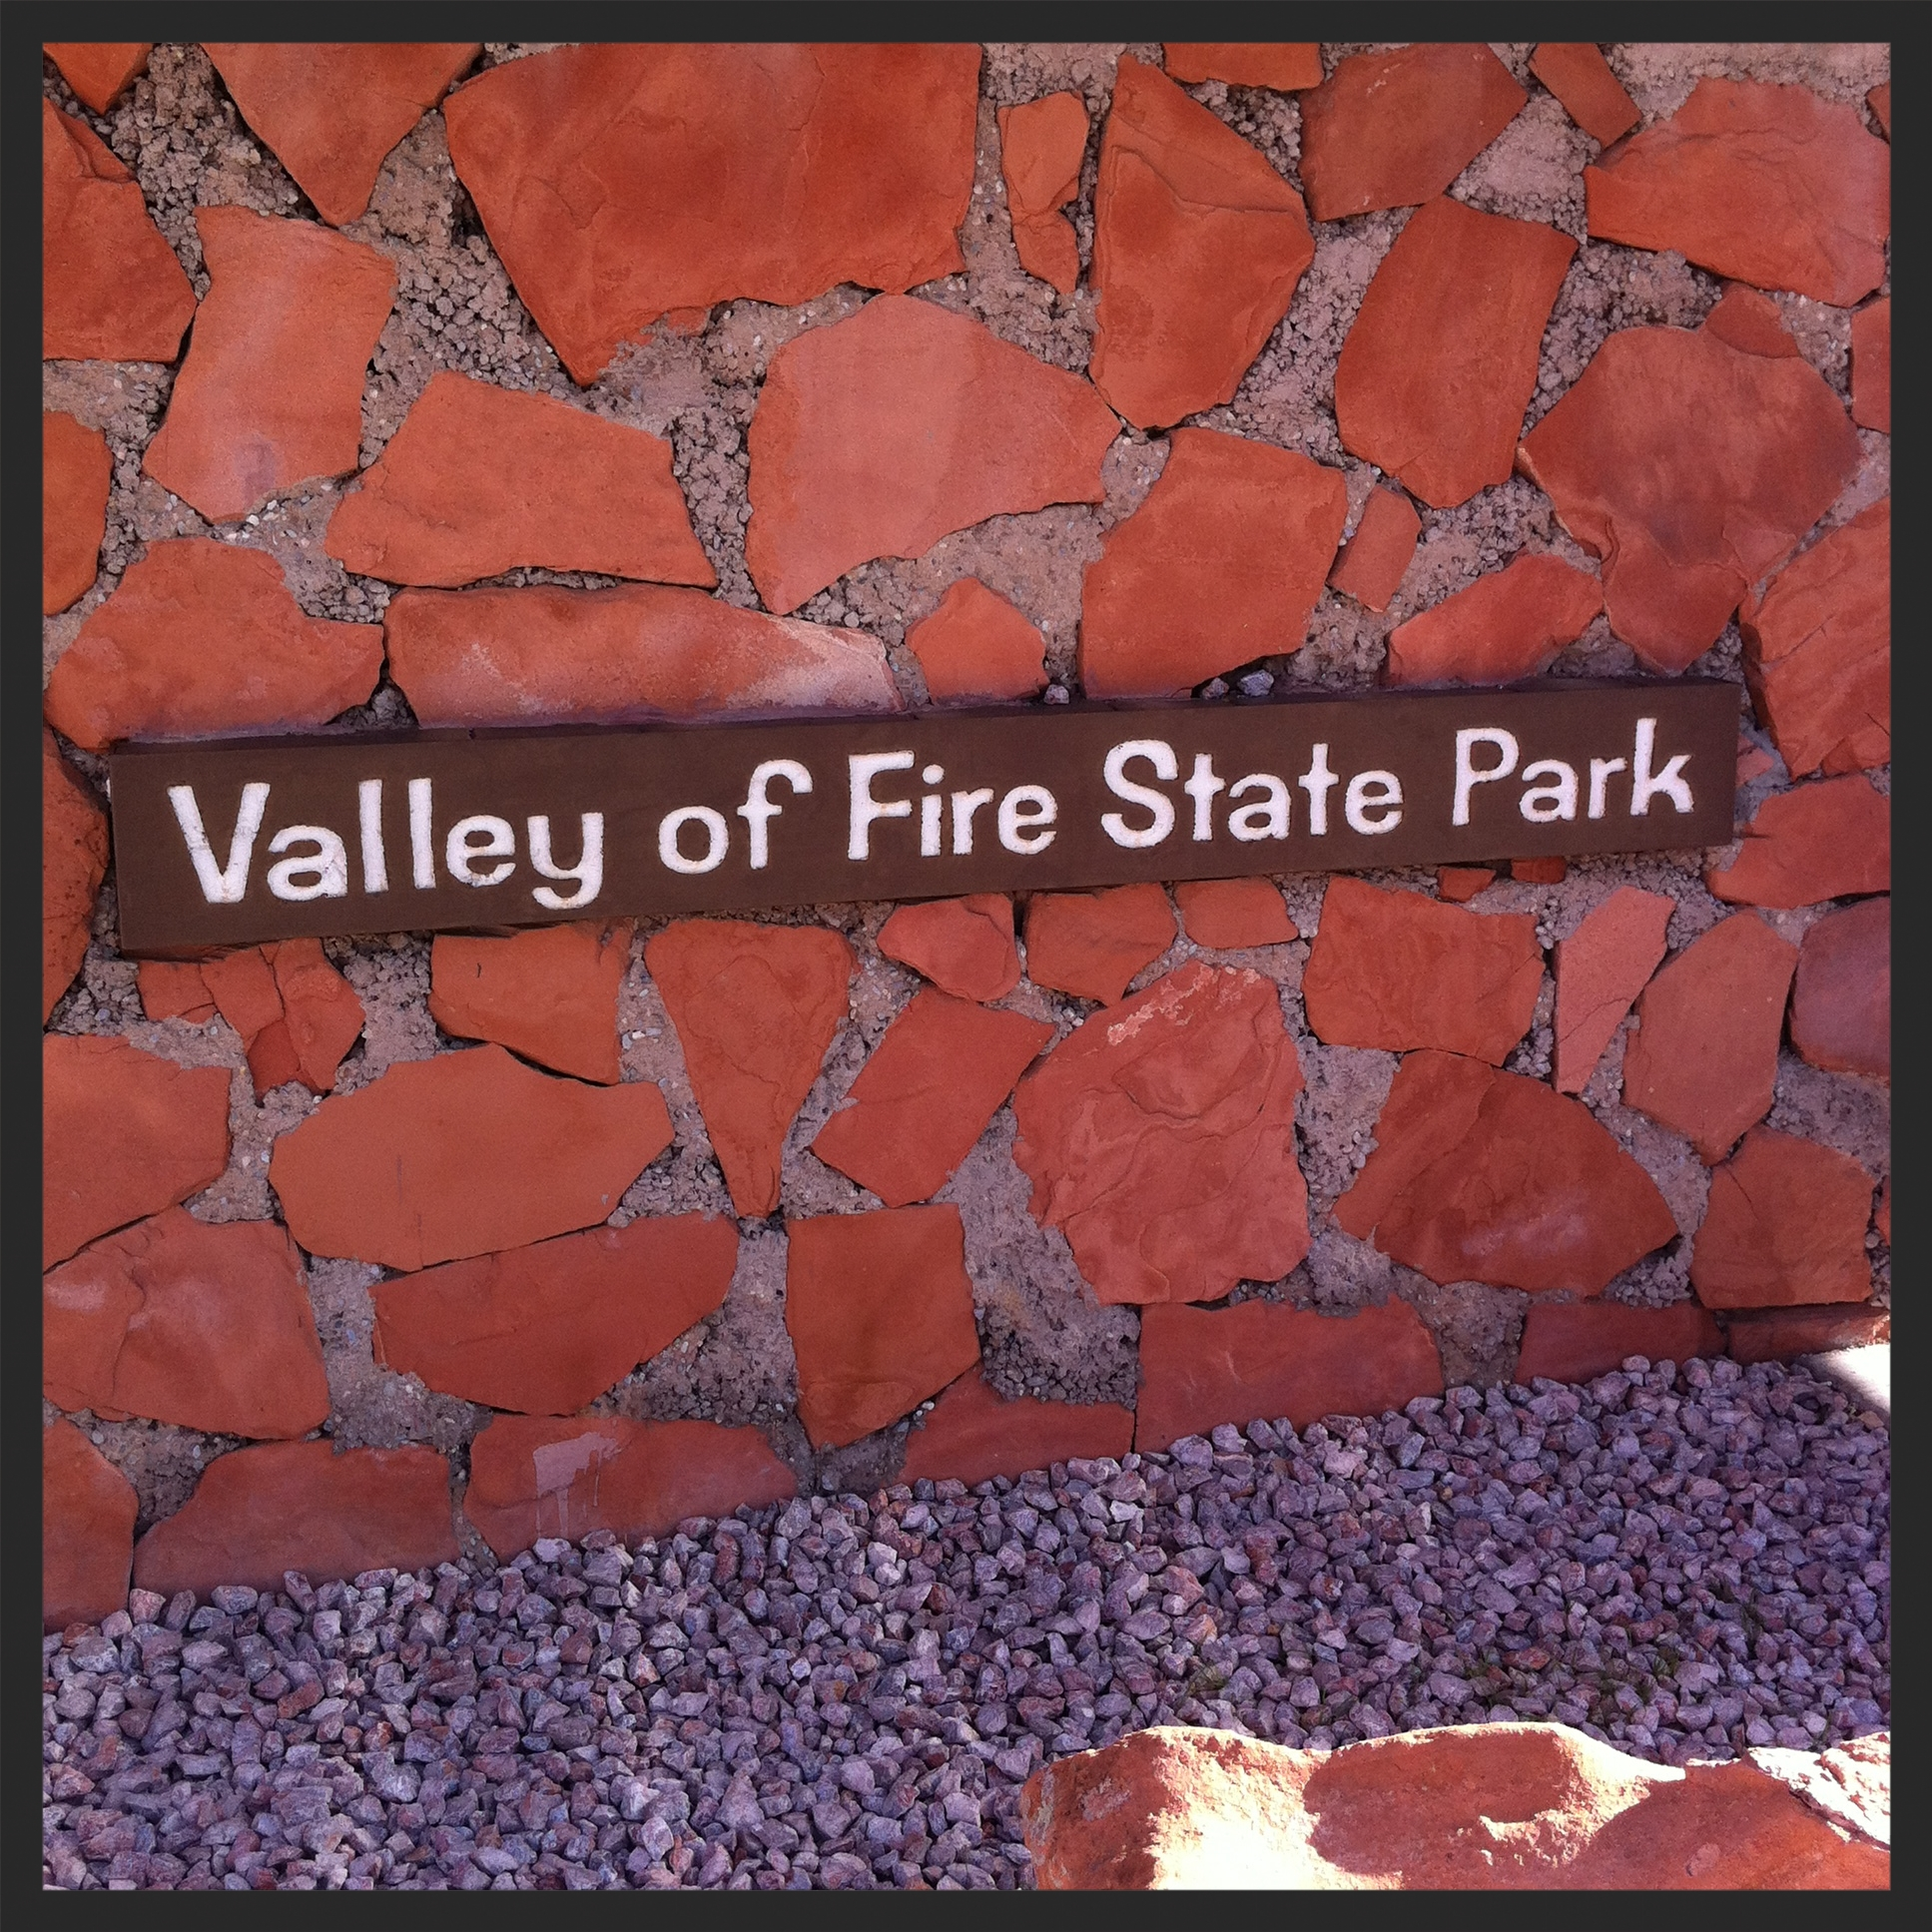 IMG_1981valleyoffire.JPG